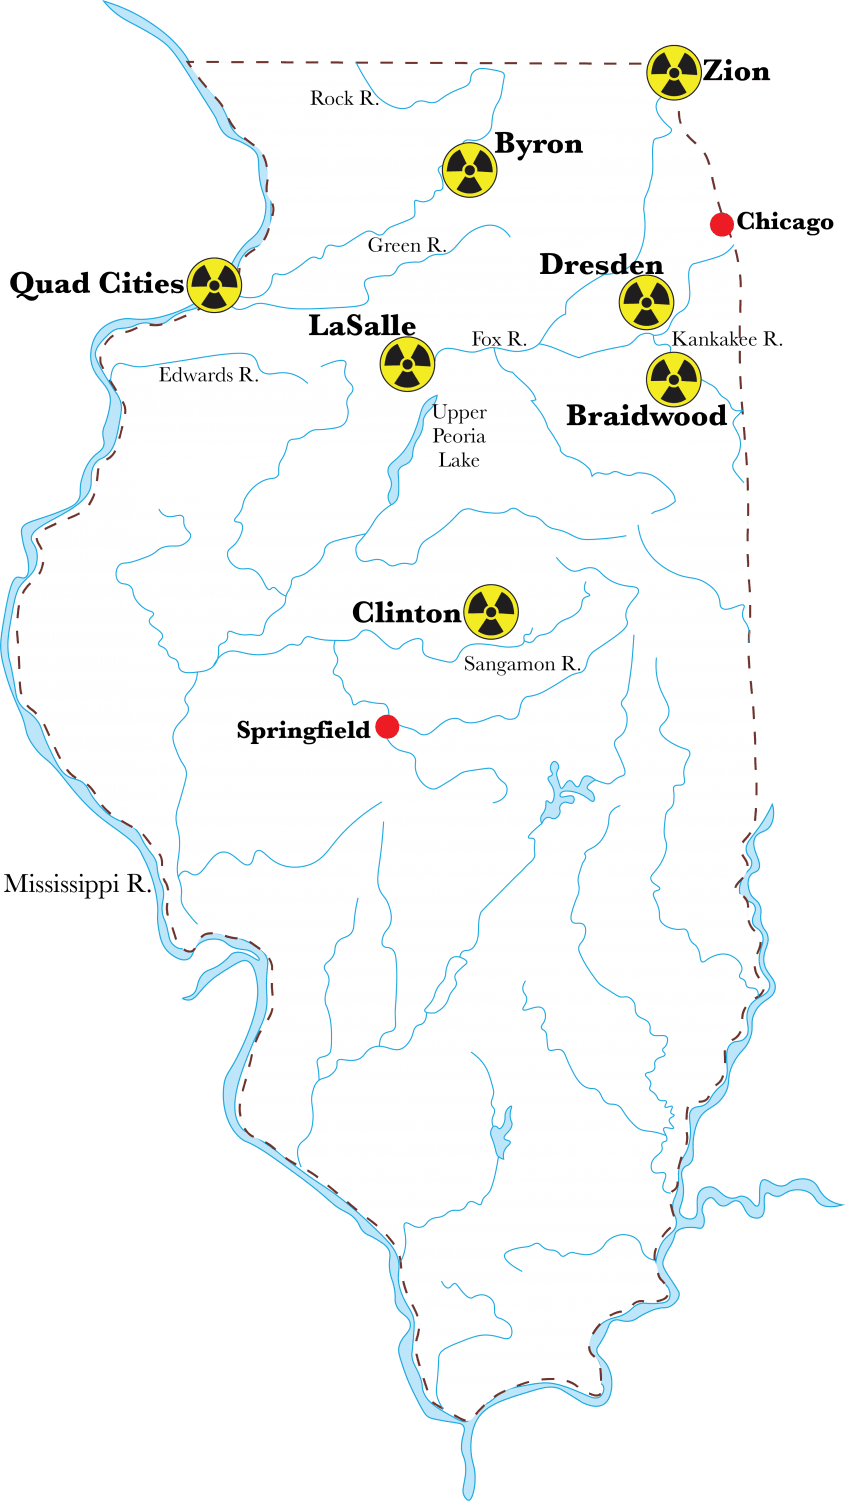 The Dresden and Braidwood reactors are two that the NRC noted as susceptible to flooding. (Victoria Williamson | The DePaulia)